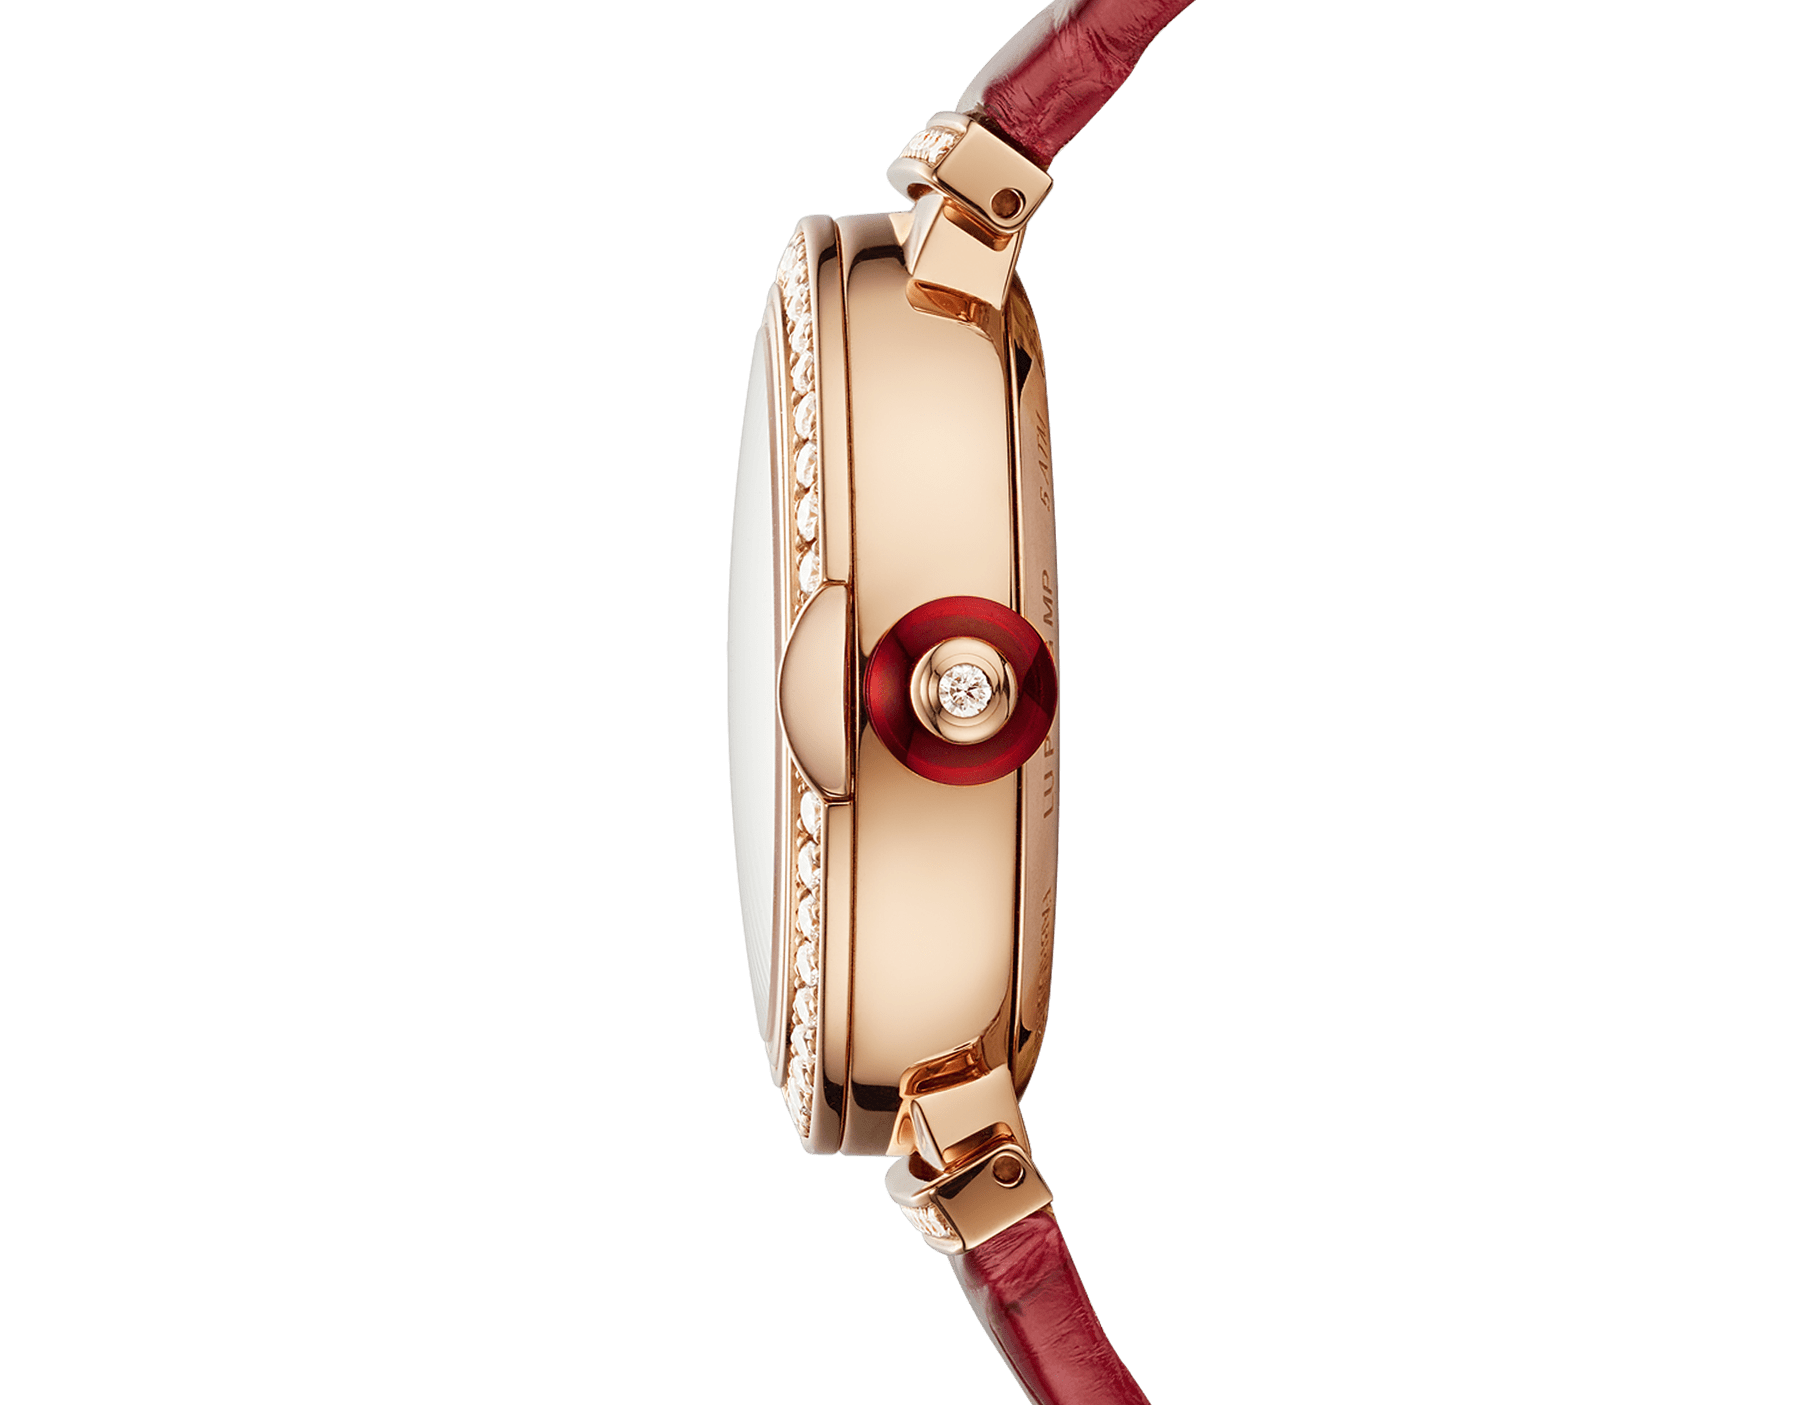 LVCEA Skeleton watch with mechanical manufacture movement, automatic winding, 18 kt rose gold case set with diamonds, openwork BVLGARI logo dial set with diamonds and red alligator bracelet 102833 image 3